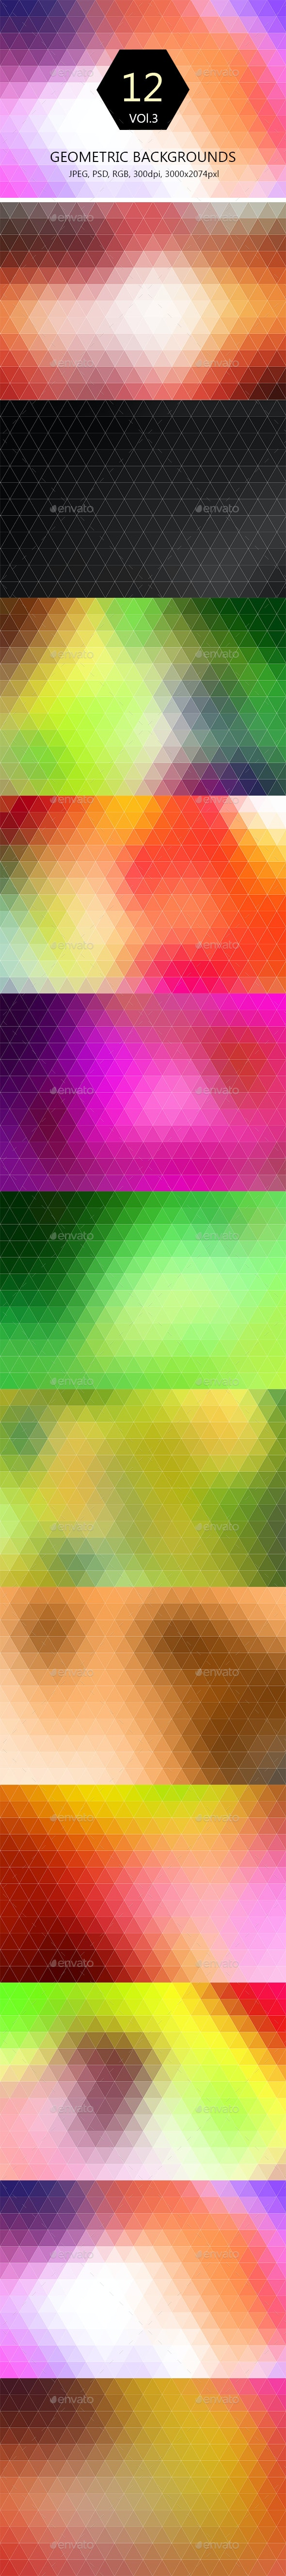 12 Geometric Backgrounds Vol.3  - Abstract Backgrounds